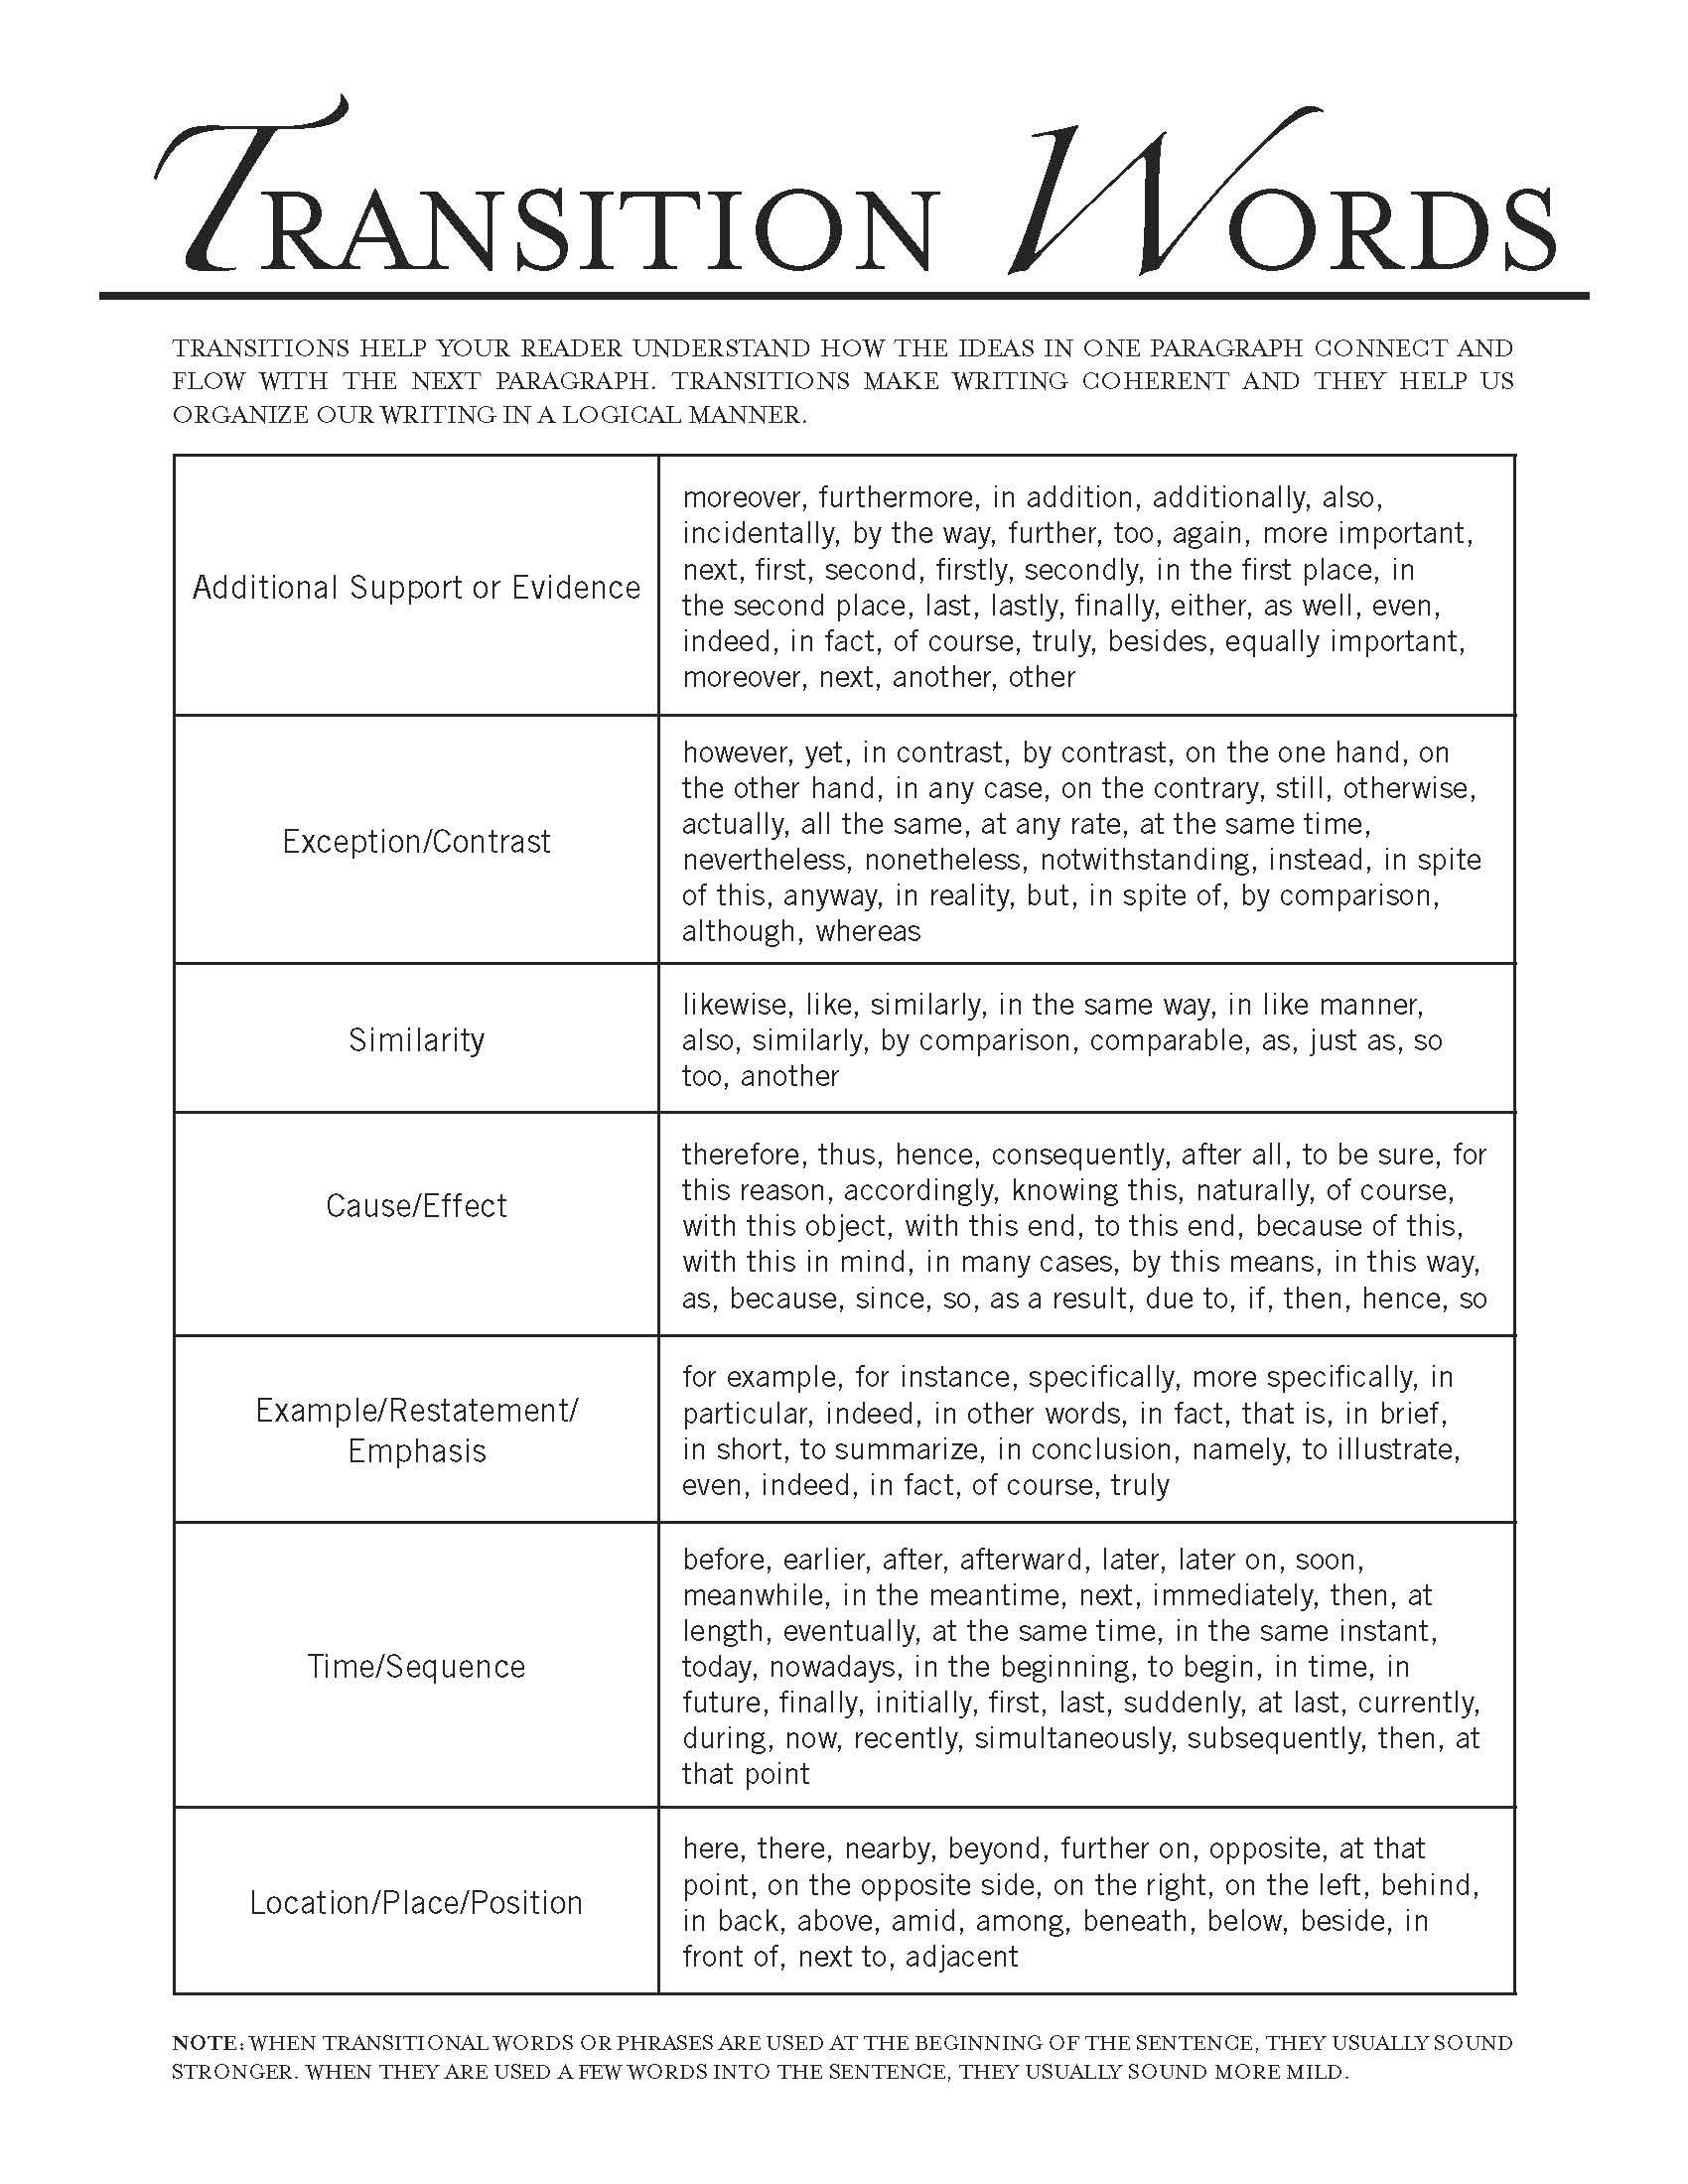 003 Transition Words For Essay Fascinating Essays Between Paragraphs Writing An Argumentative In Spanish Full